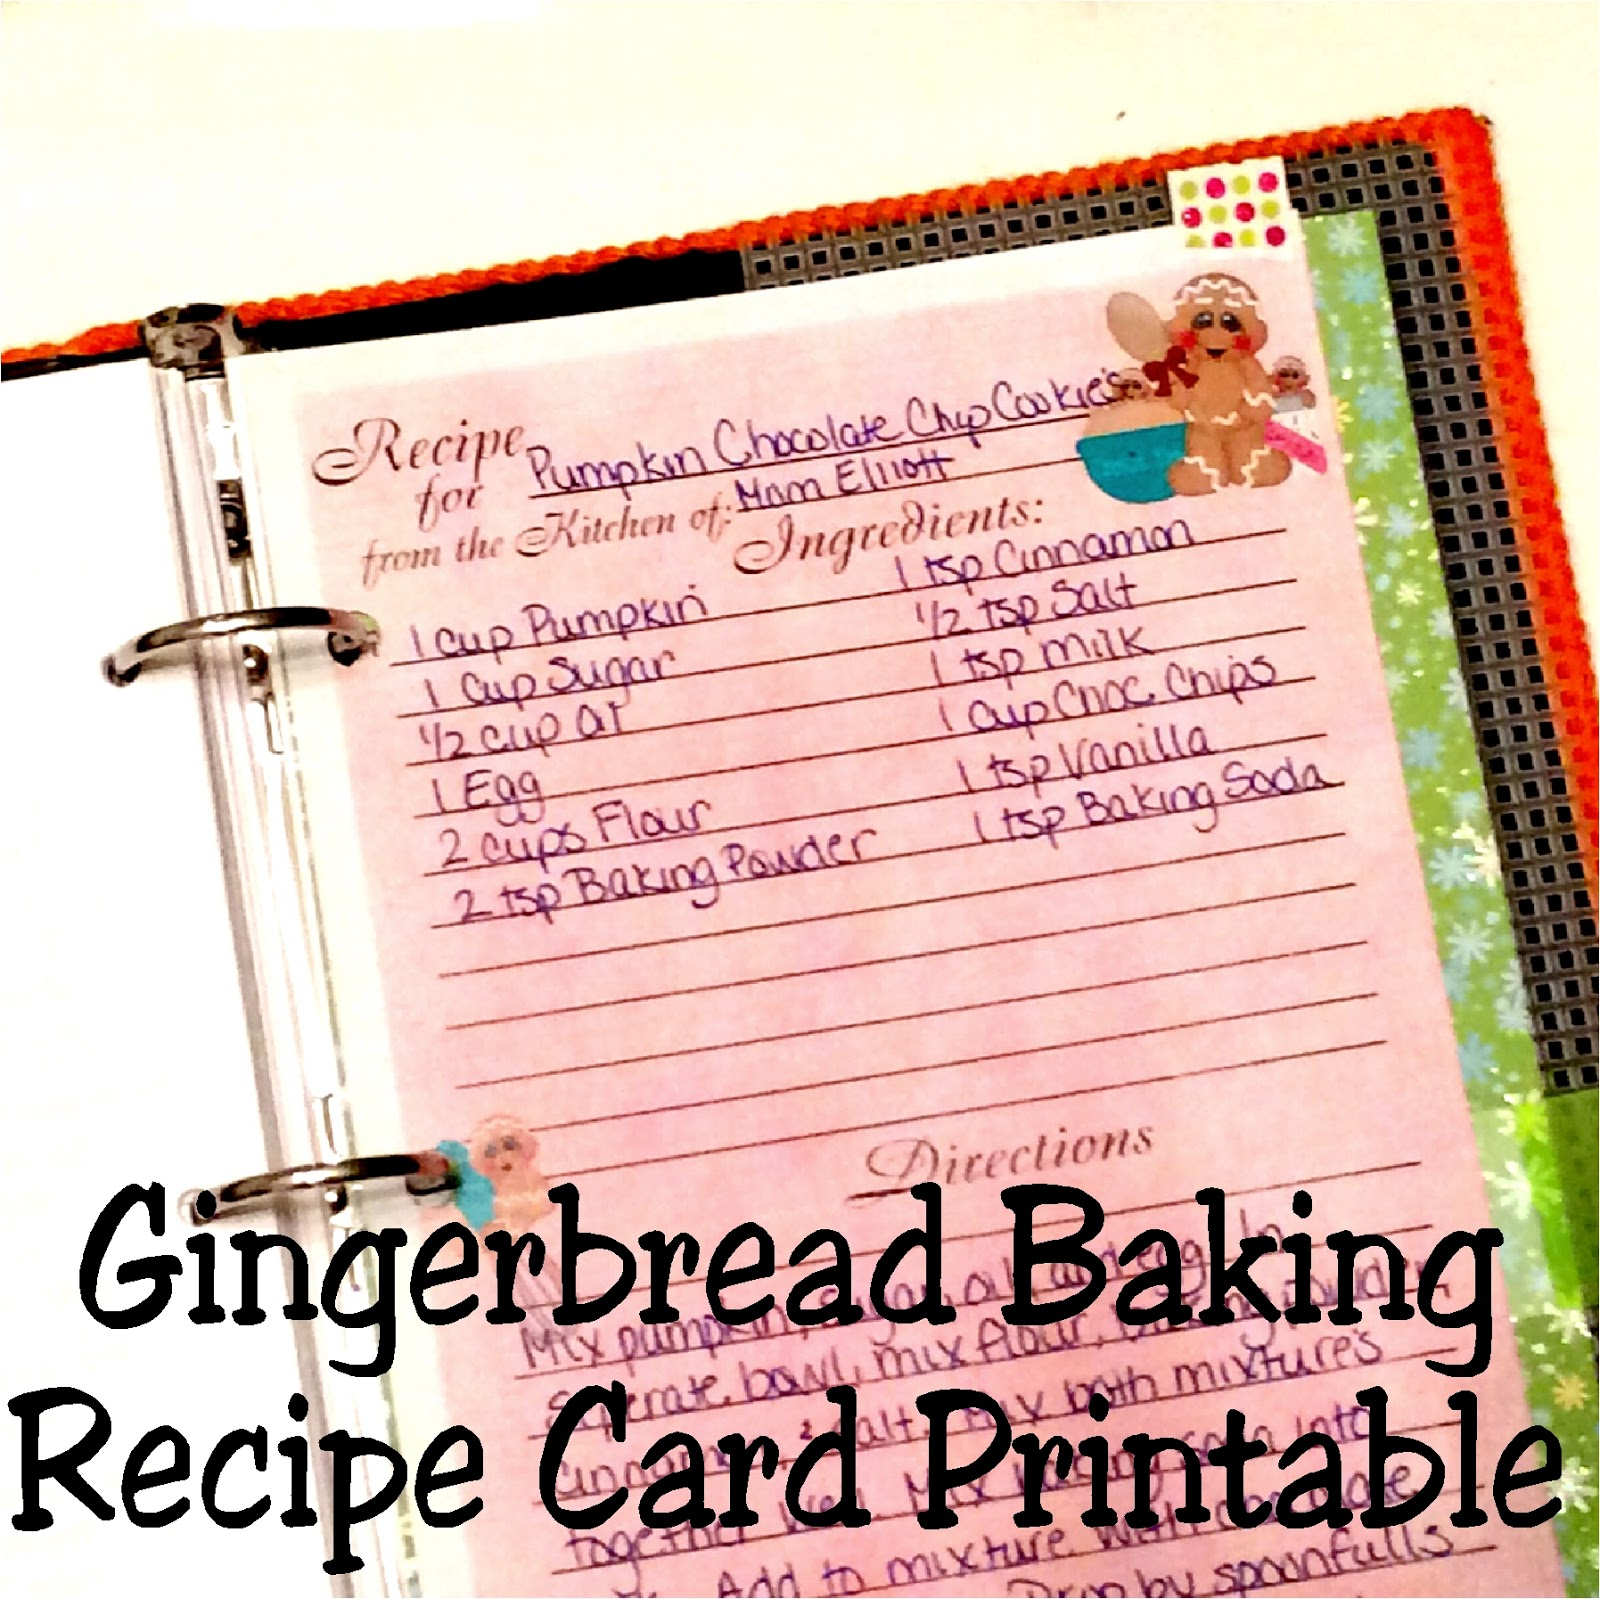 It's just an image of Inventive Cute Recipe Cards